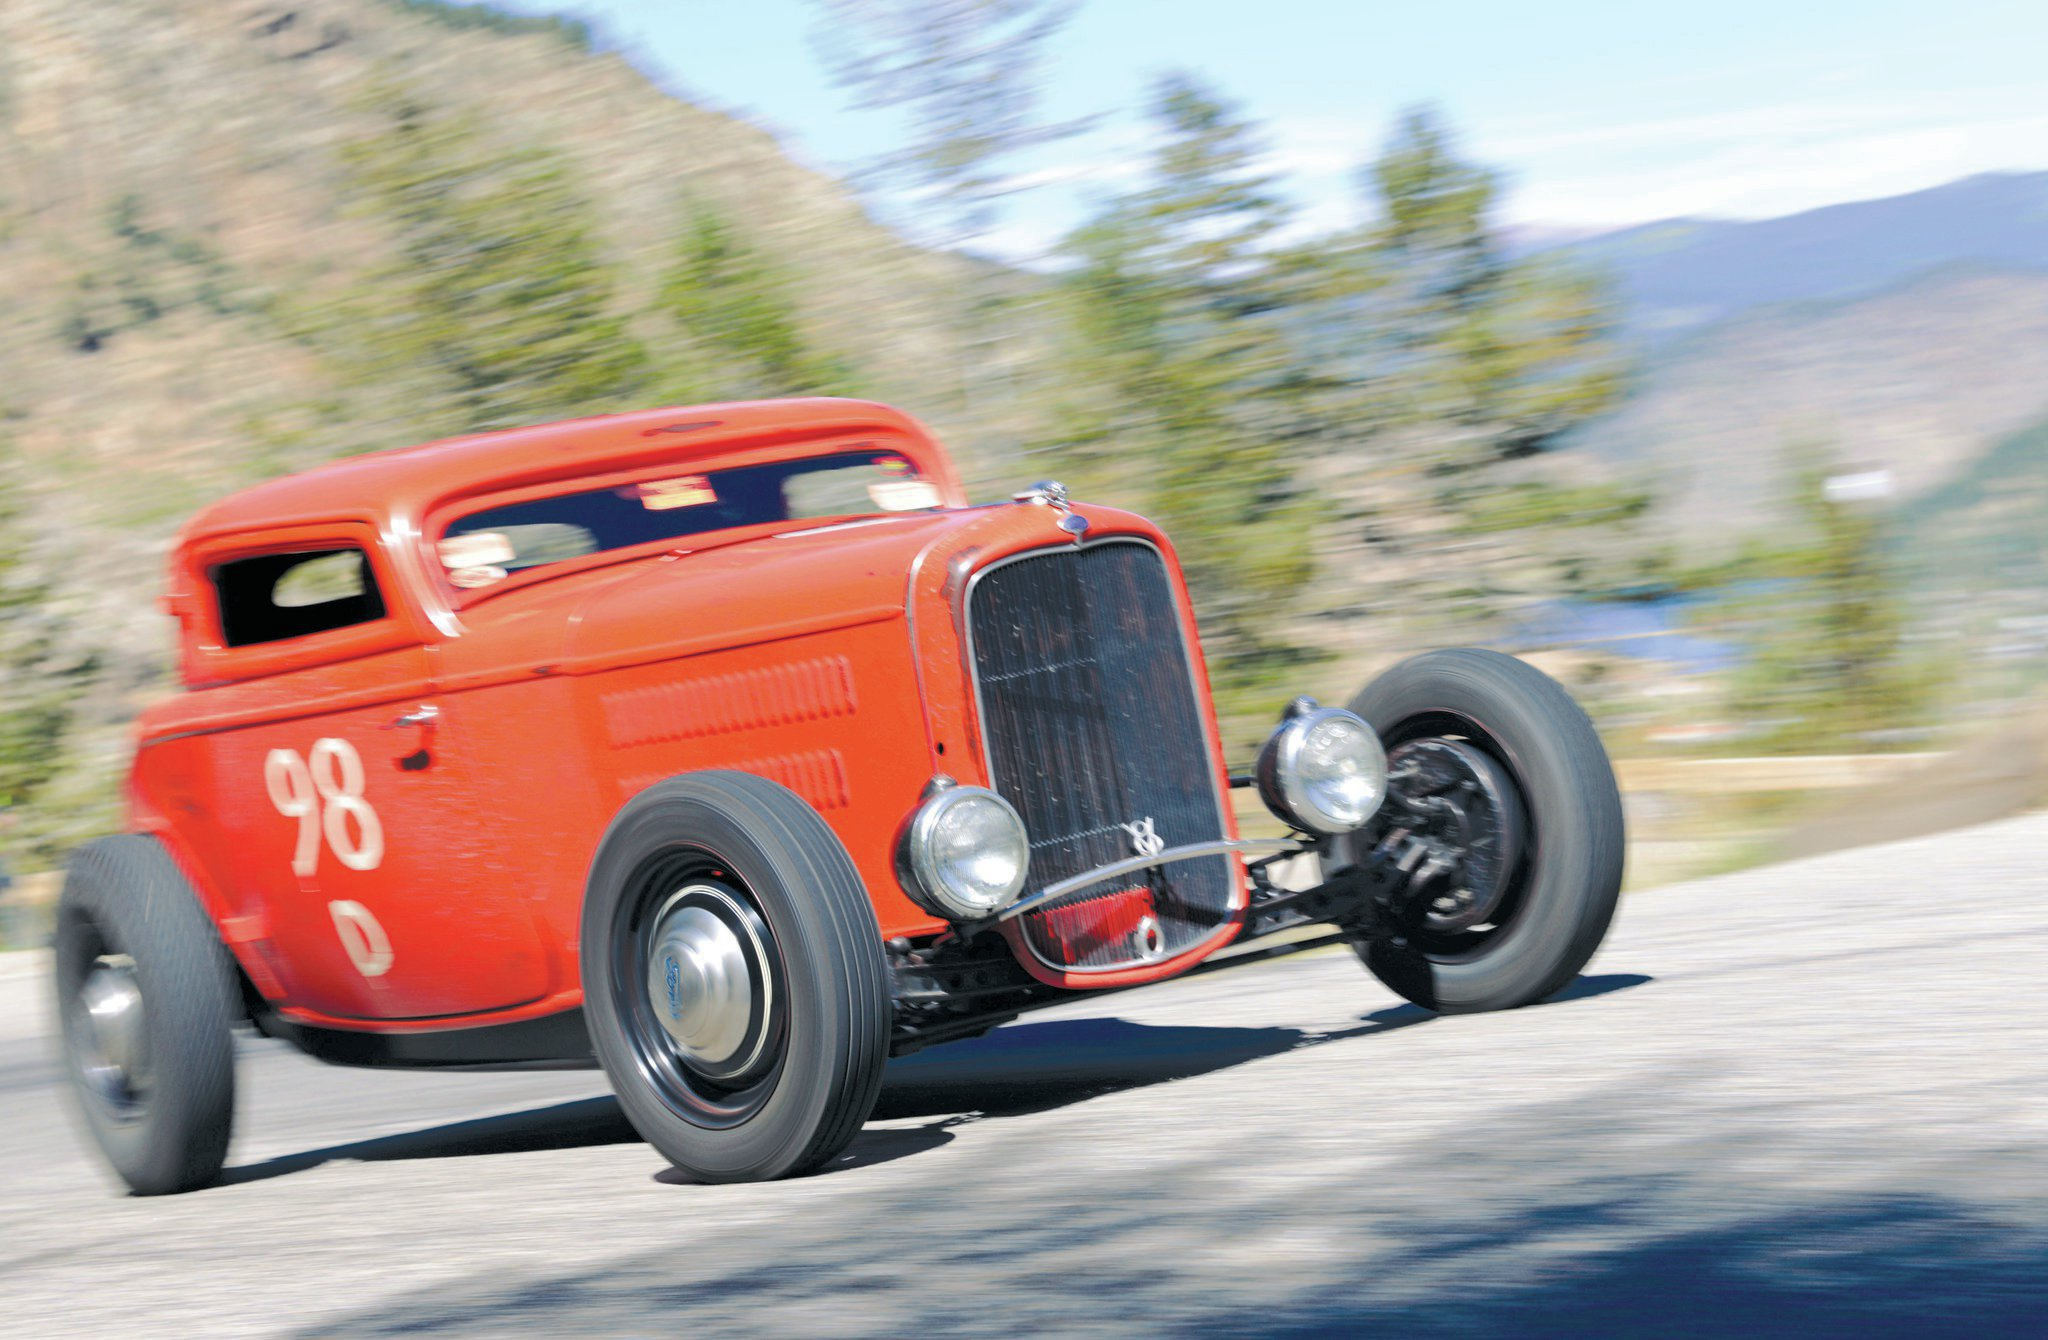 Dave Scroggs' heavily flogged Orange Peel three-window, a fixture in the Denver-area rodding scene, was a collaborative effort between Dave and the Rolling Bones Hot Rod Shop. It's built with a bored Chevy 292 that's topped with a triplet of two-barrel Rochesters. A '32 Ford axle, wishbones, and a quick-change rear with original Ford bells make up the meat of this build. Dave's late father, Don, is a legend in these hills, taking home a class win in the '54 HRHC with partner Cal Kennedy.